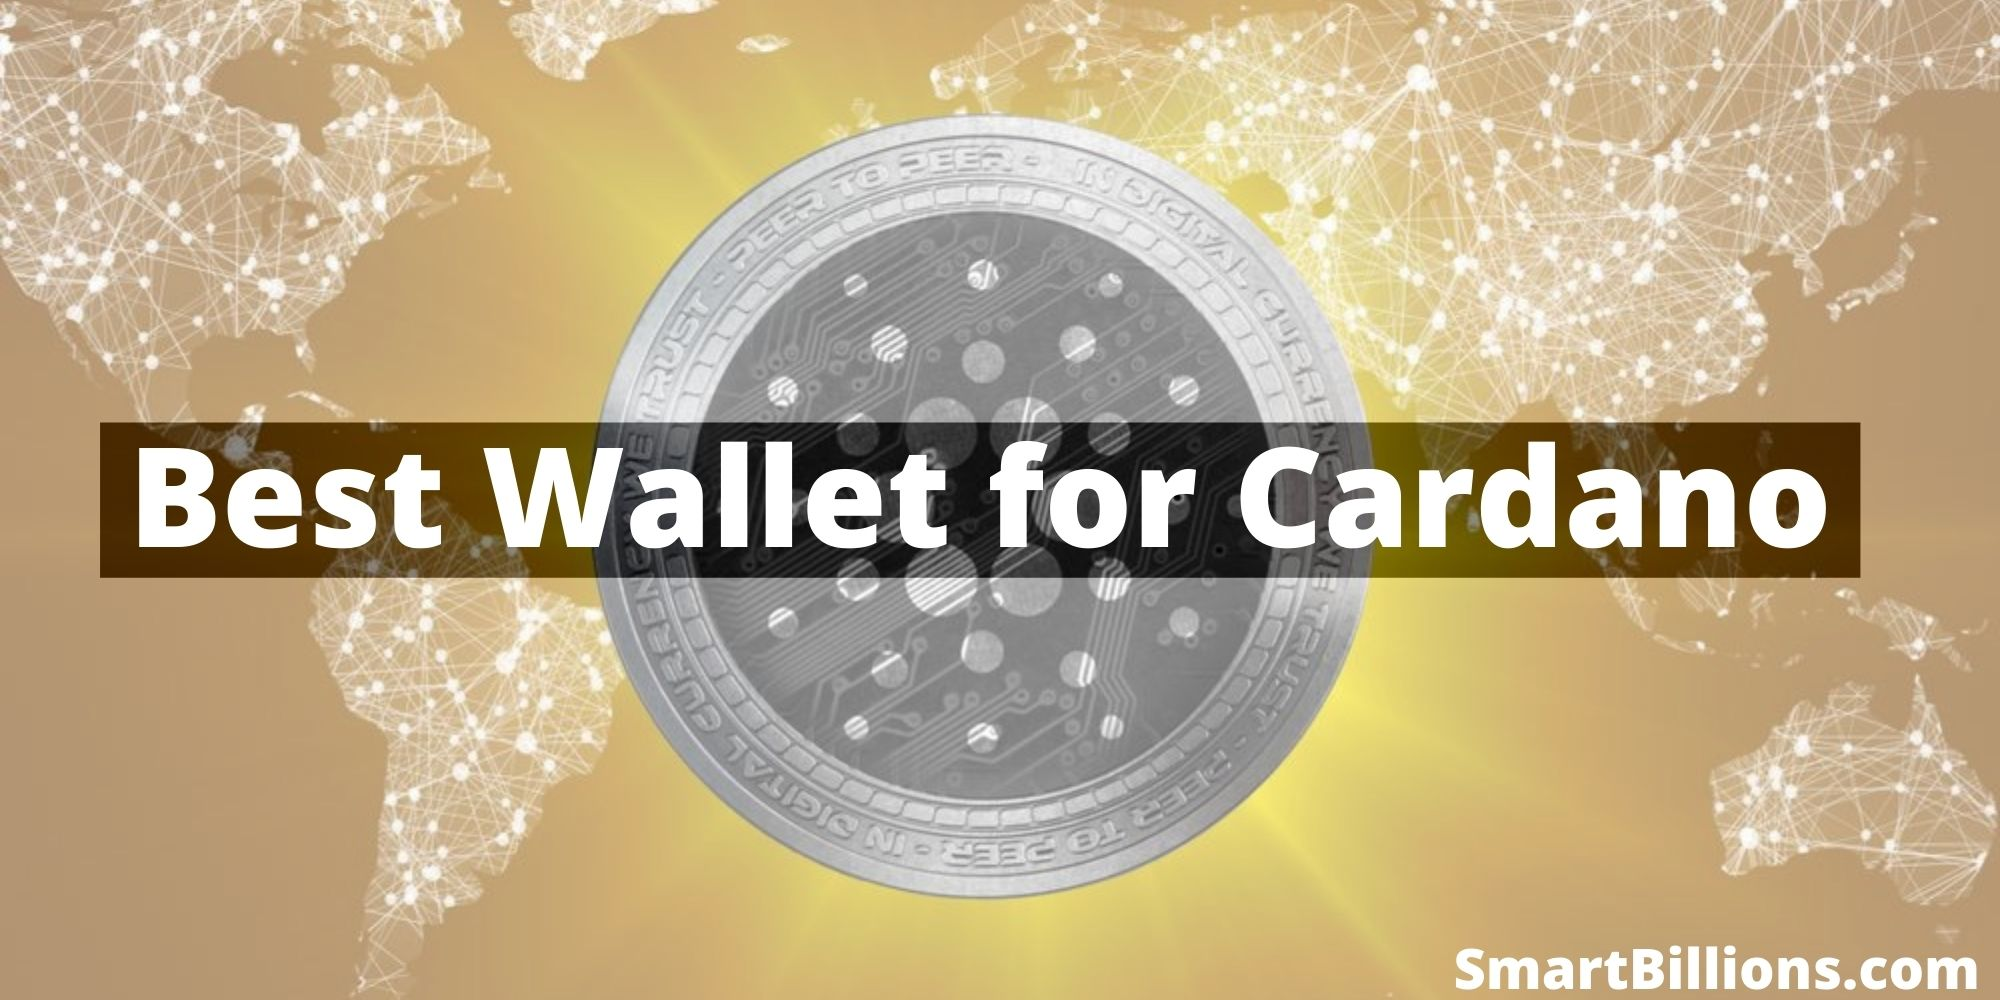 best wallet for cardano